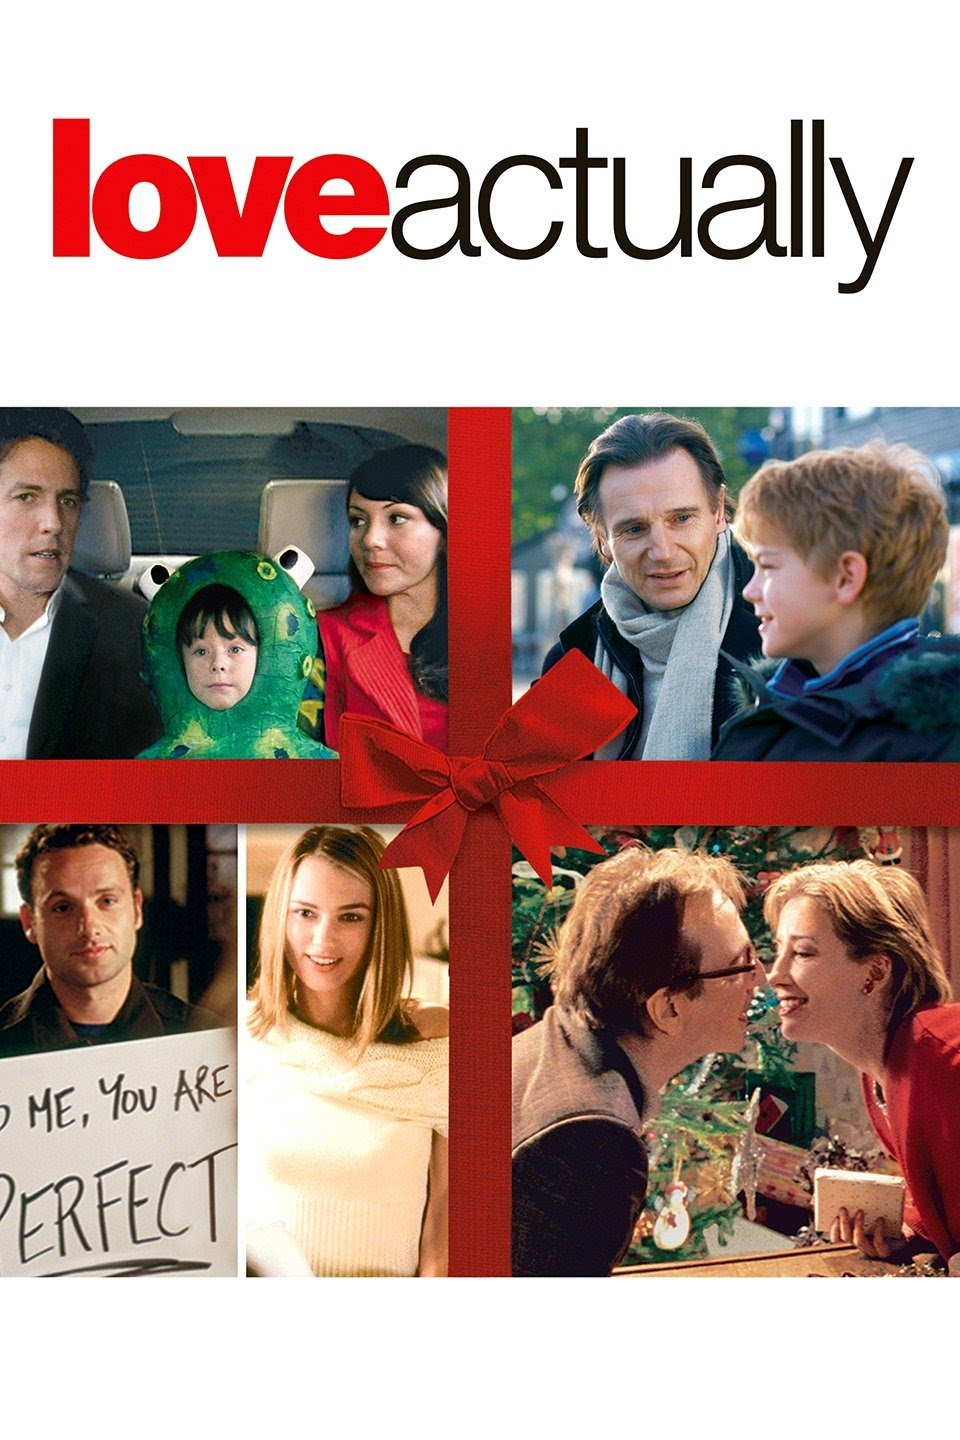 holiday movies to stream // holiday movies on amazon // holiday movies on peacock // holiday movies on Disney plus // holiday movies on Hulu // holiday movies on YouTube // holiday movies on Netflix